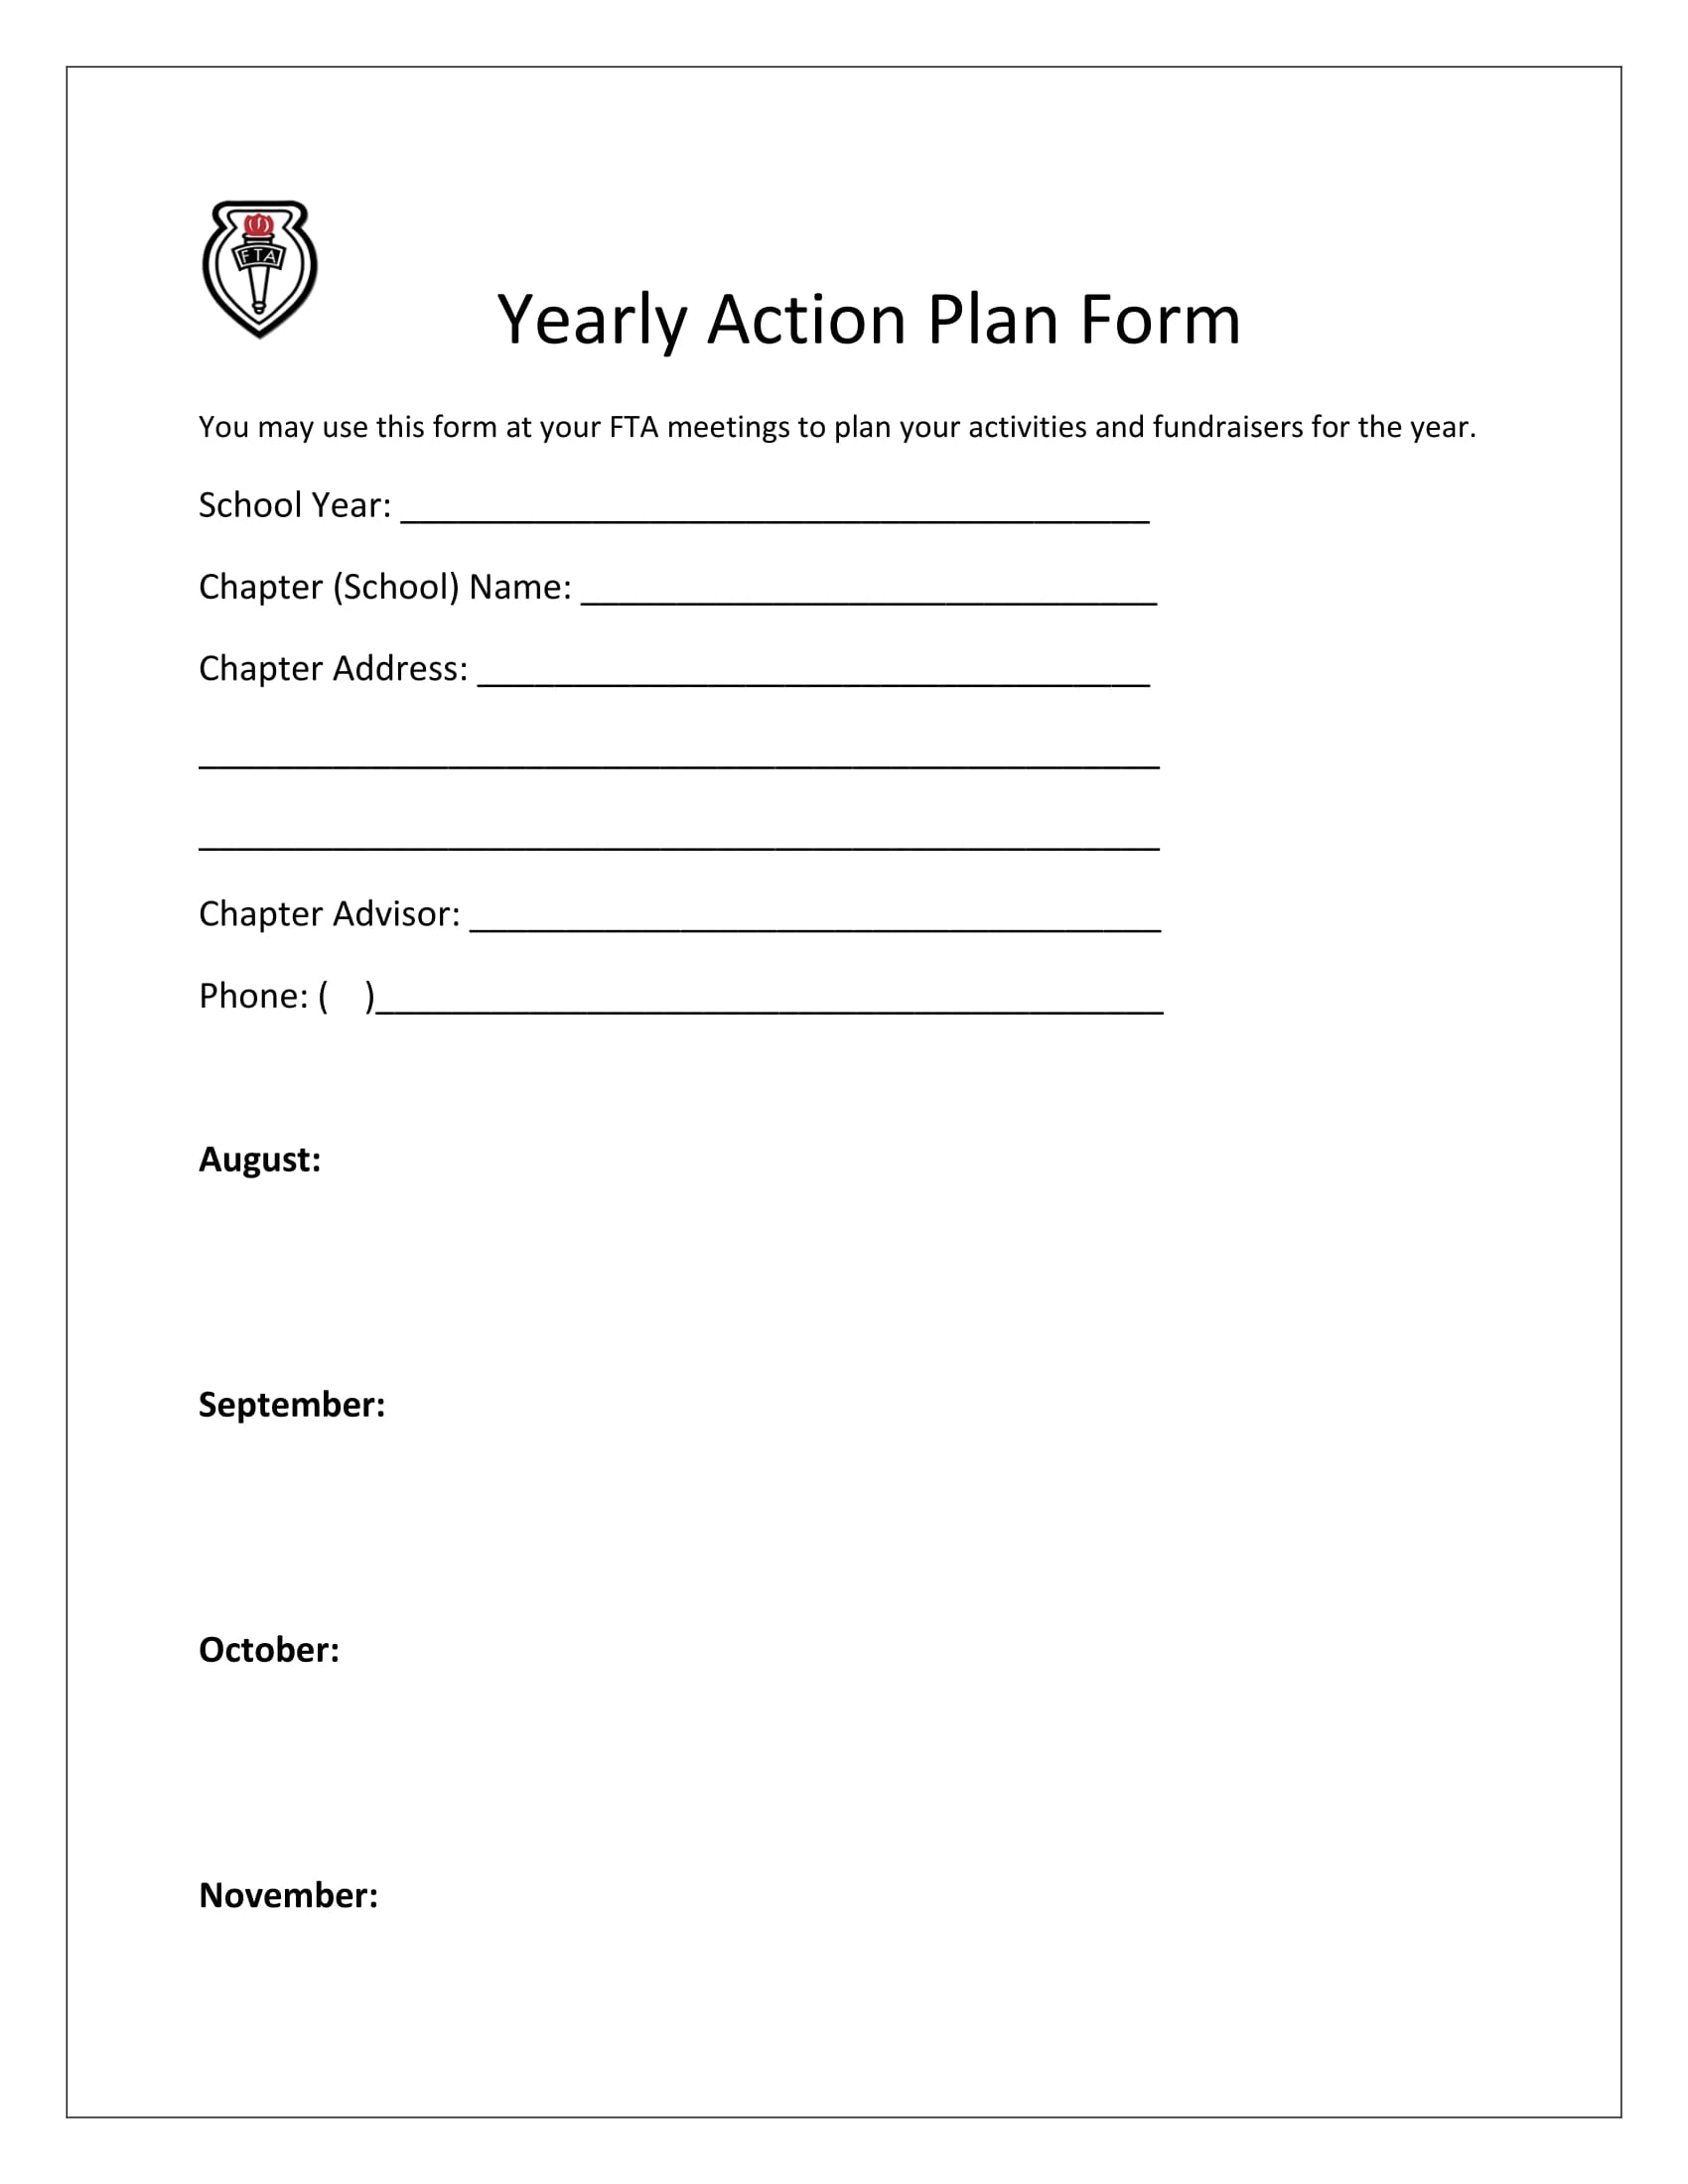 yearly action plan form 1